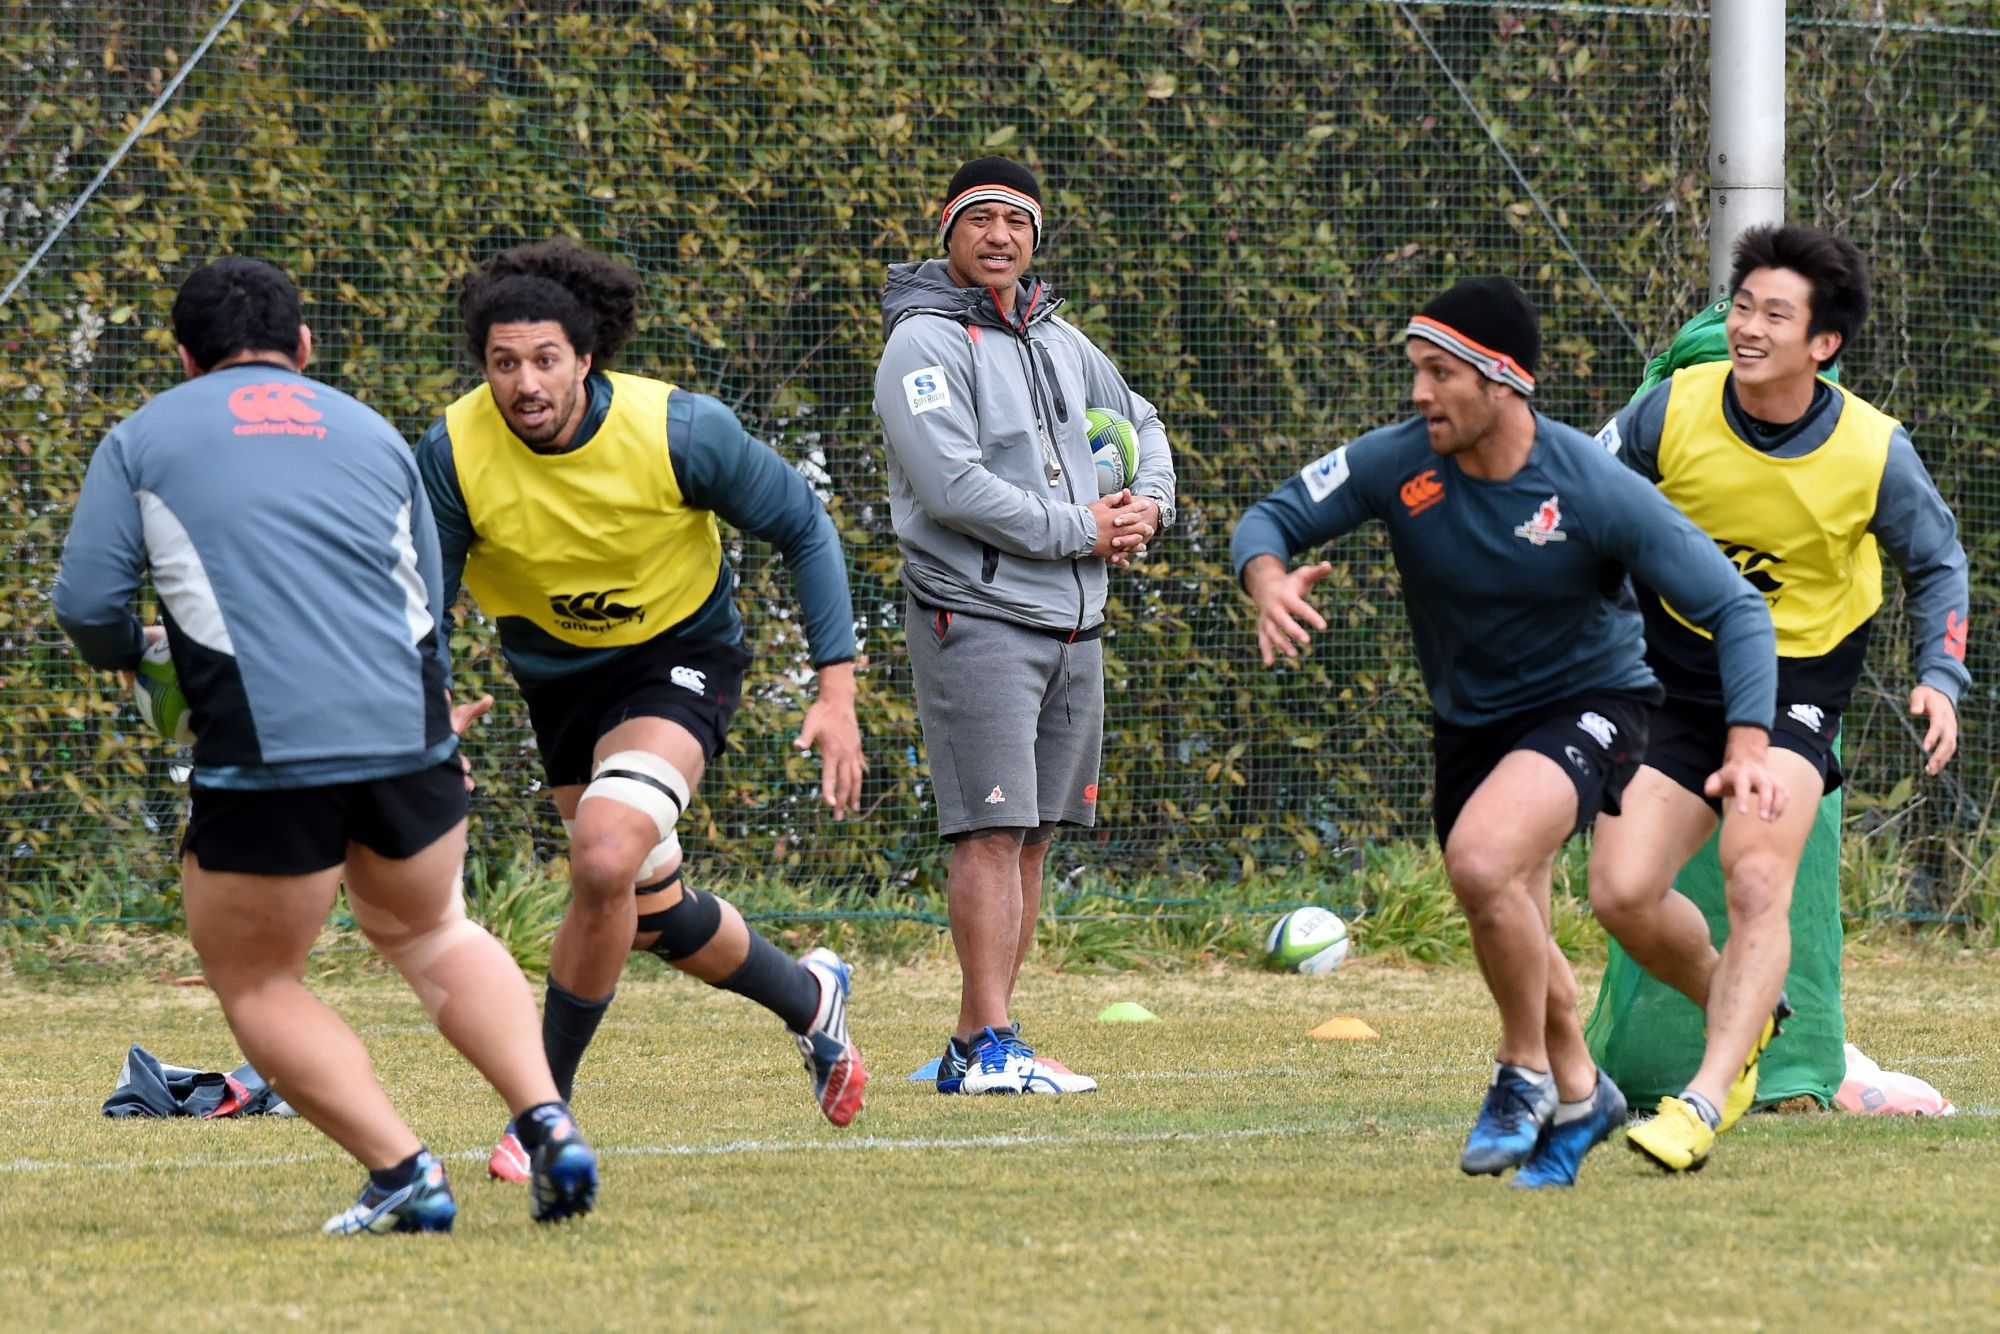 Sunwolves coach Filo Tiatia (center) oversees a practice session on Monday. | AFP-JIJI